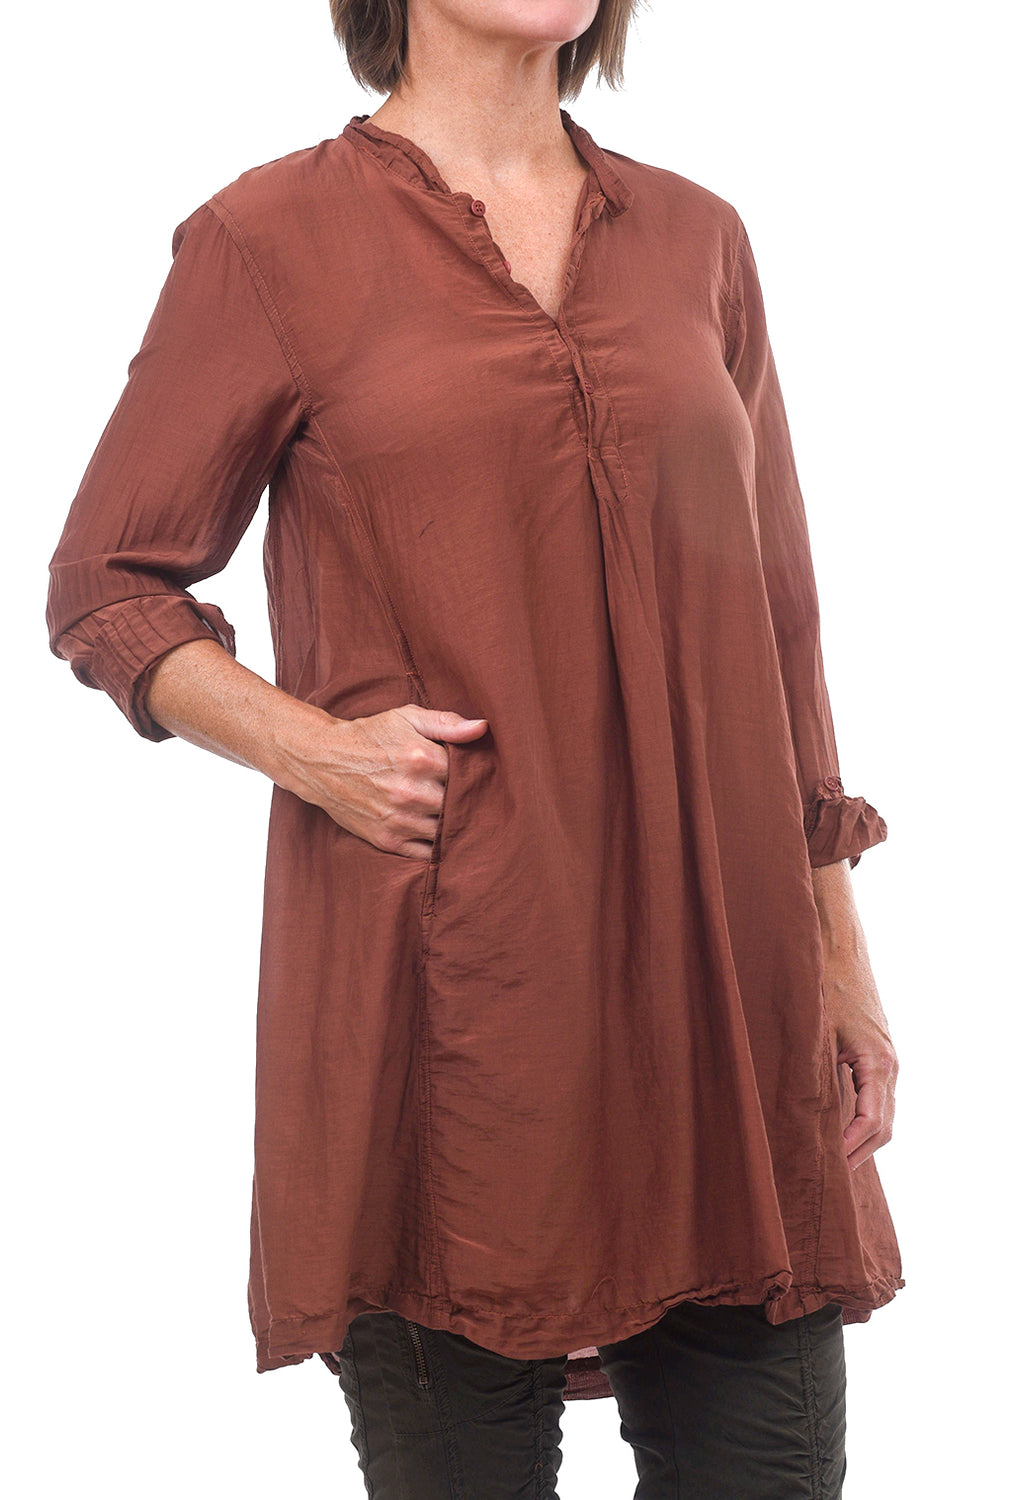 CP Shades Silk-Cotton Jasmine Tunic, Pluot